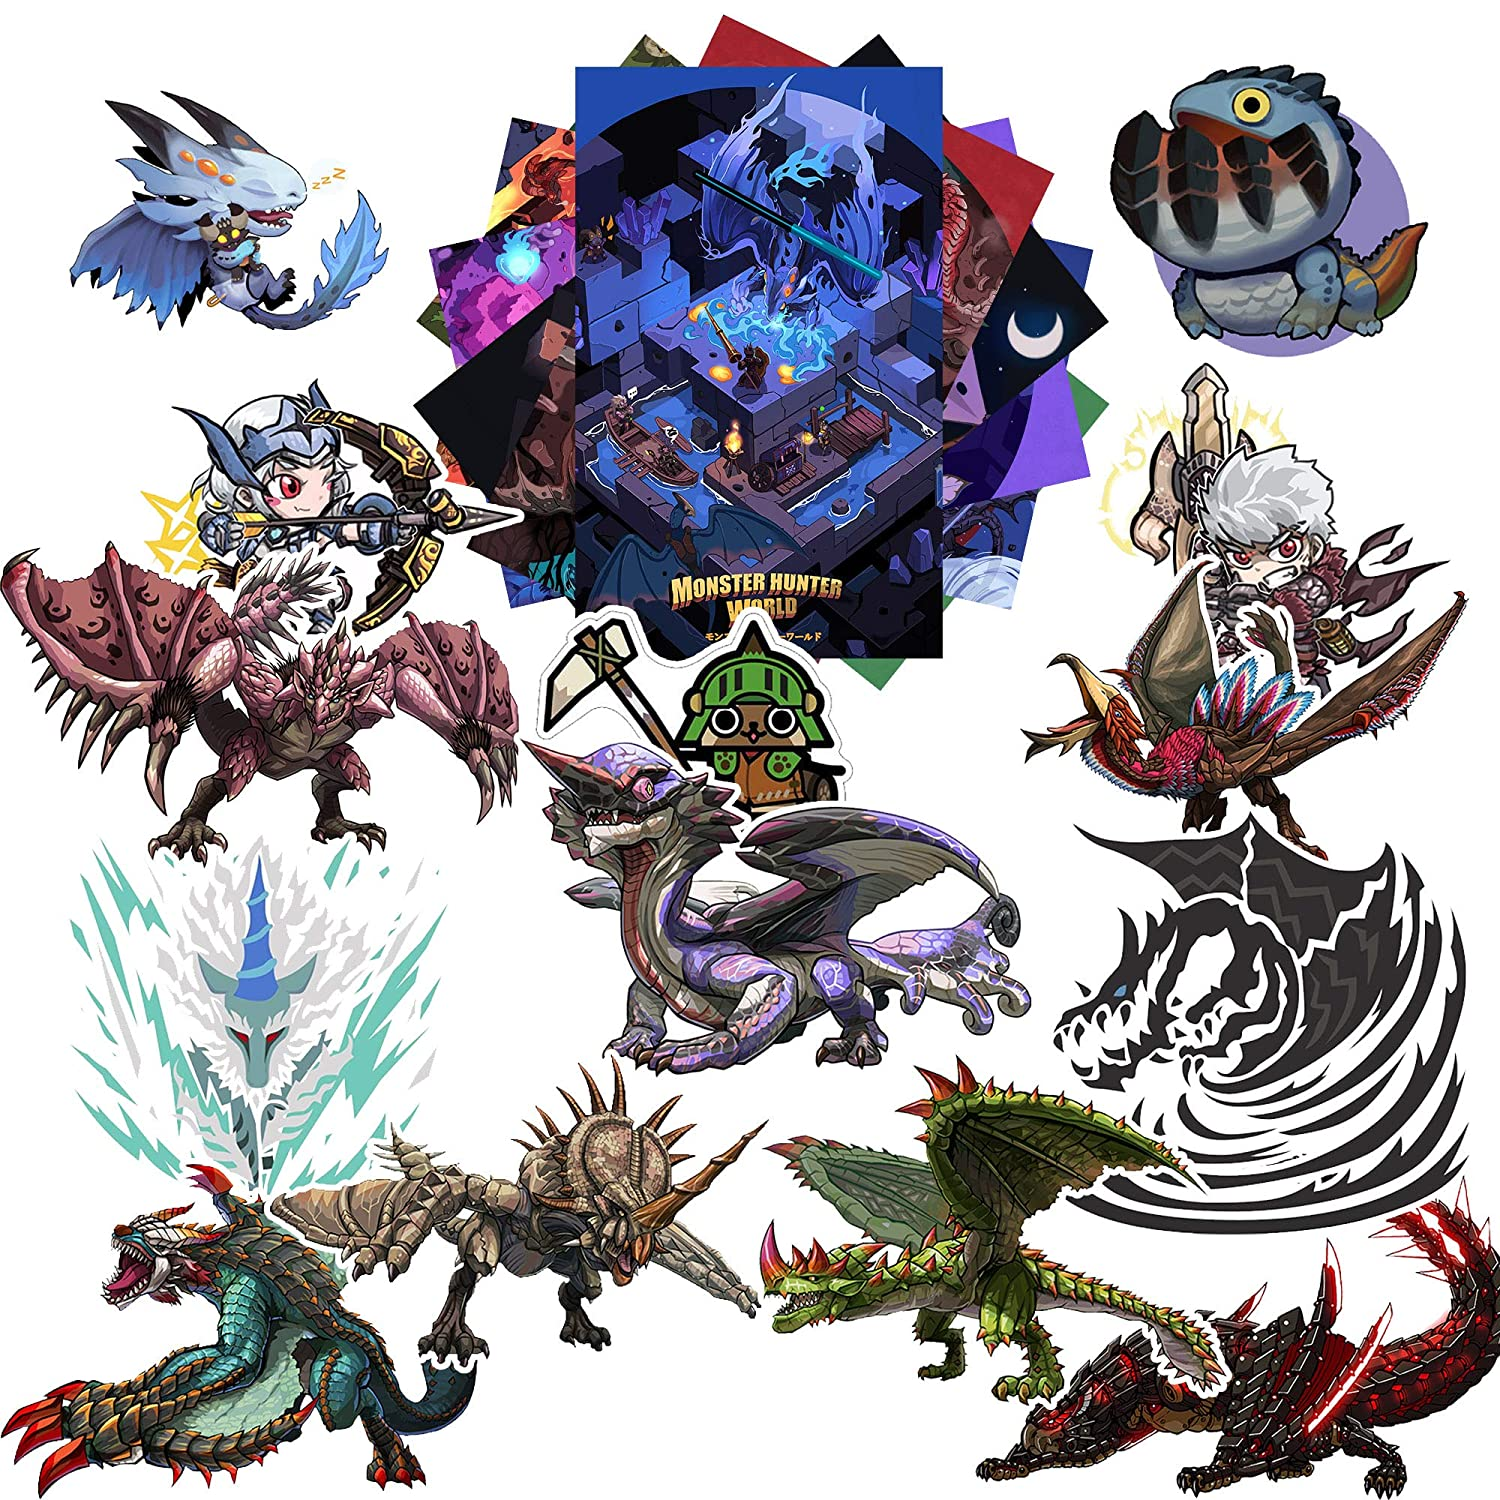 Monster Hunter Stickers Pack 20-Pcs, GTOTd Stickers Decals Vinyls for  Laptop,Waterbottle,Gift,Teens,Cars, Collection、Skate Board(Not Random)